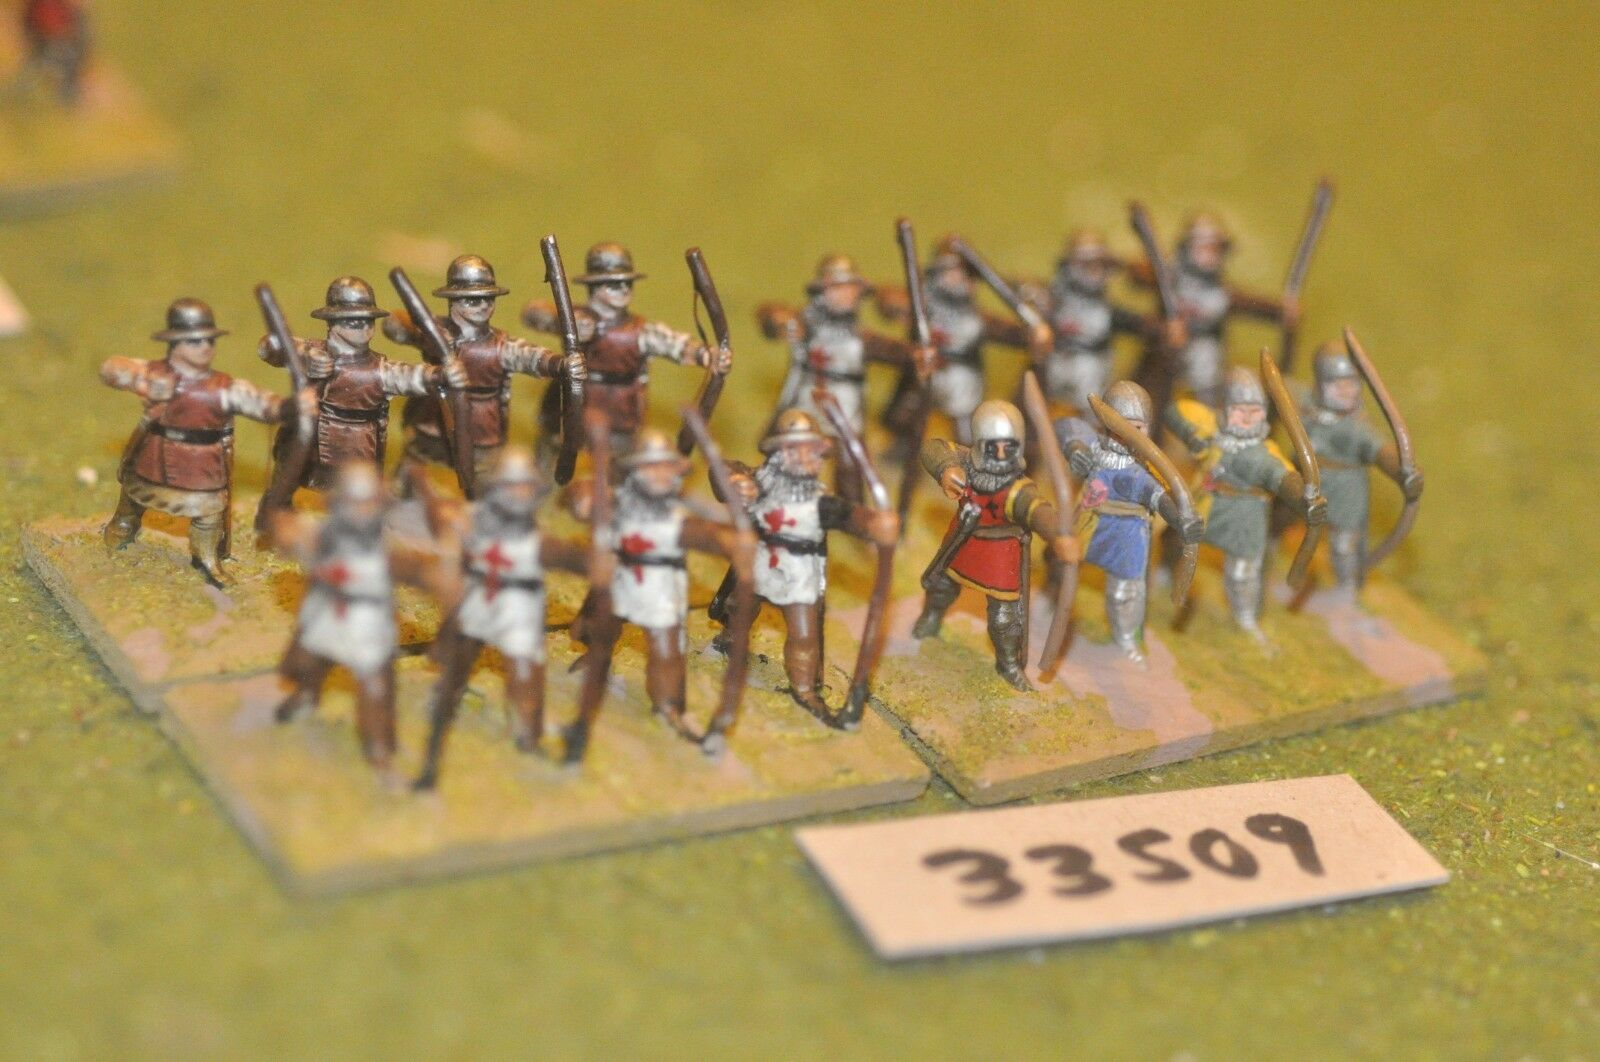 25mm medieval   english - archers 16 figures - inf (33509)